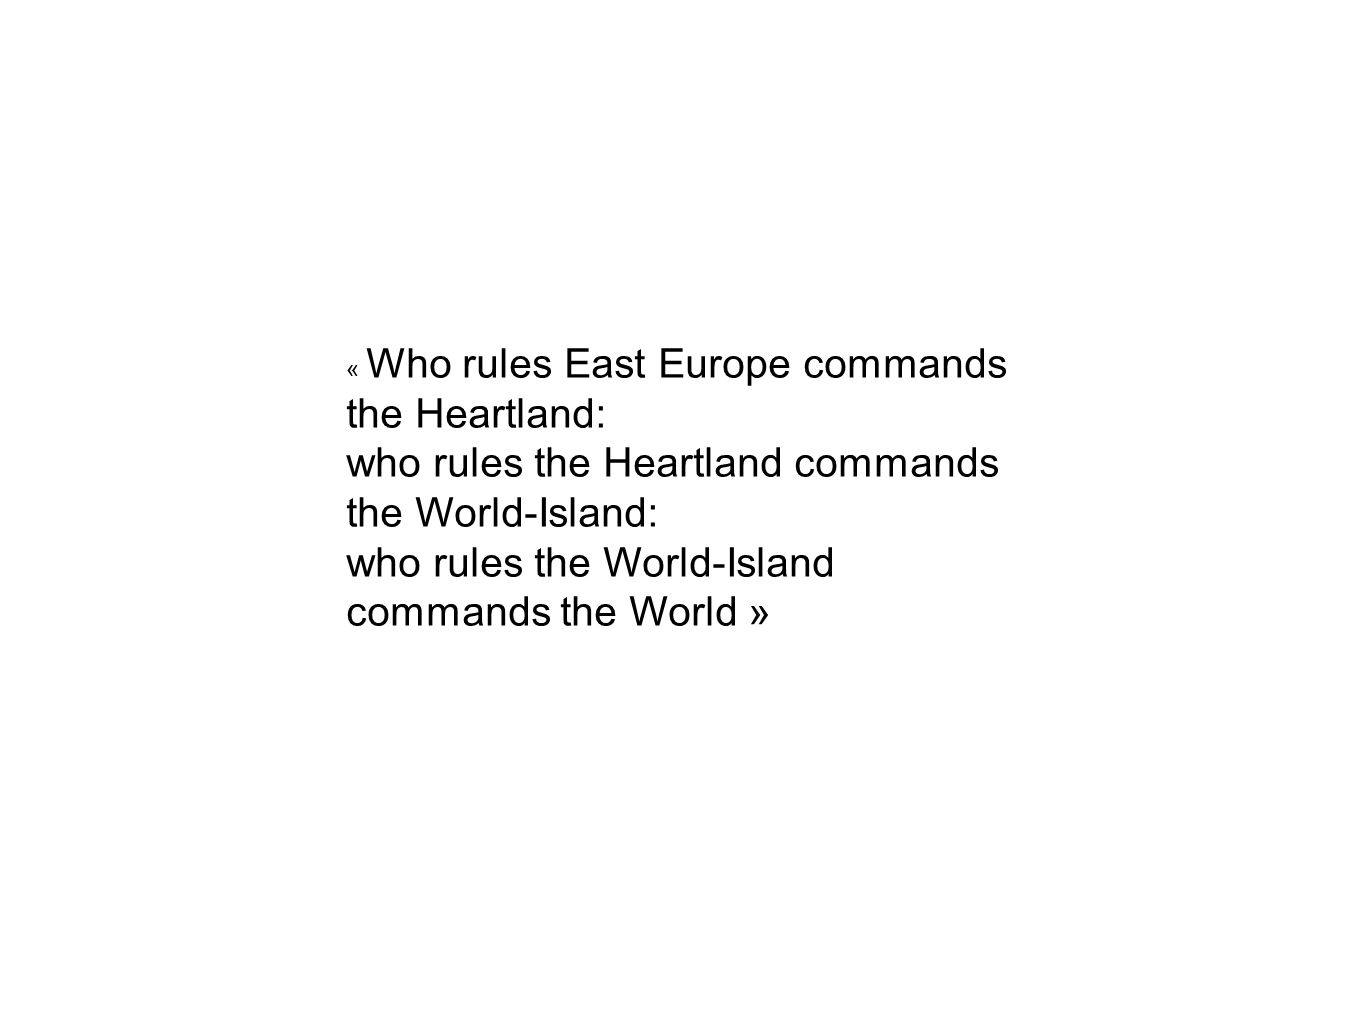 who rules the Heartland commands the World-Island: